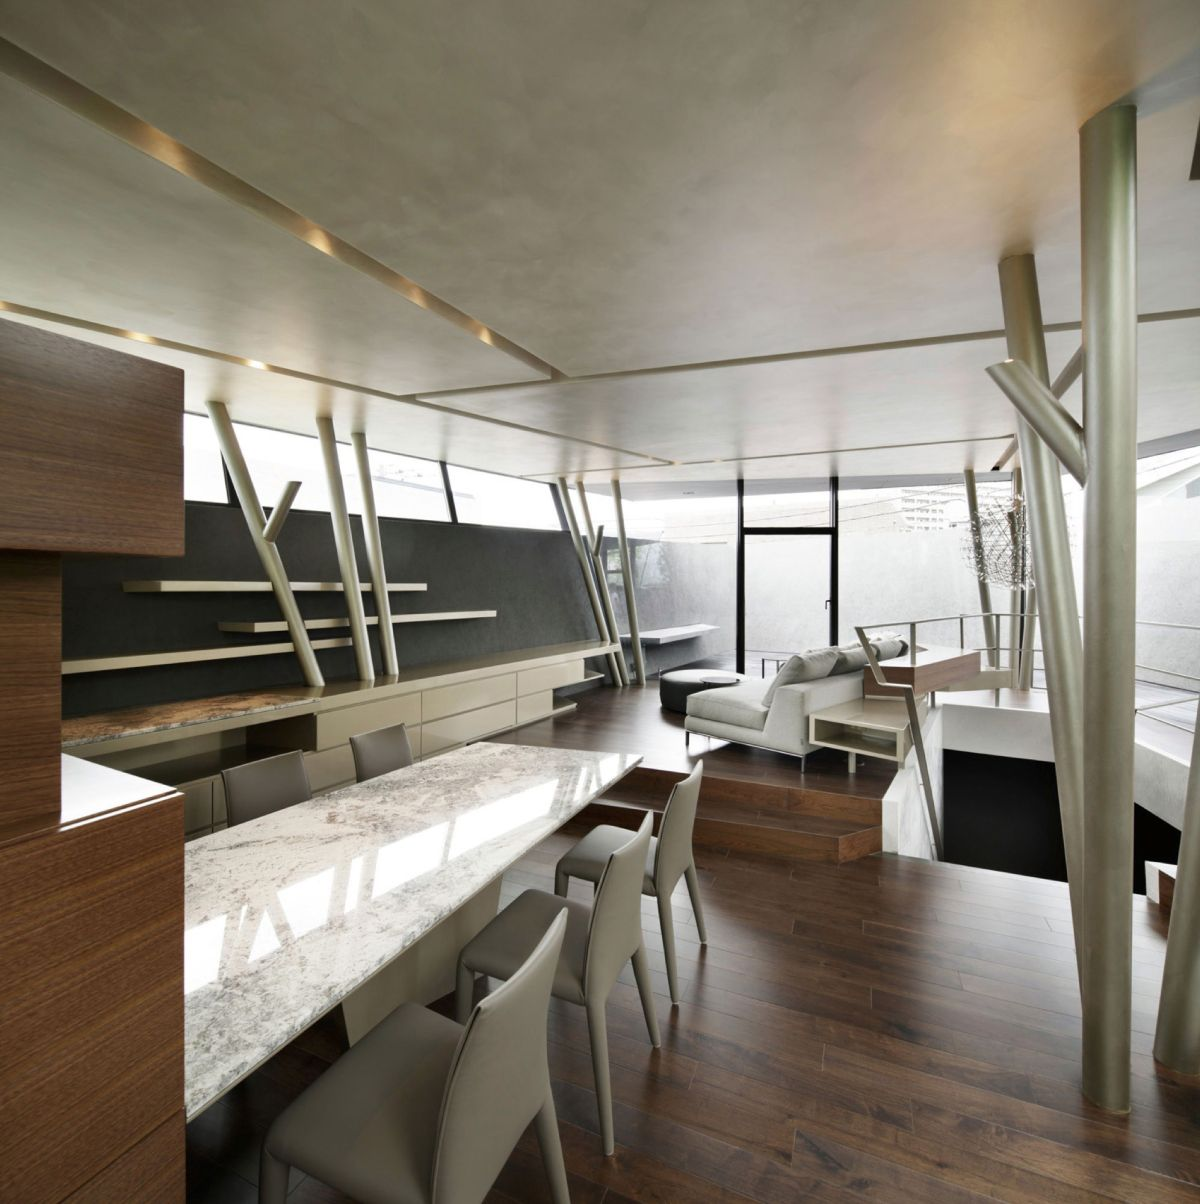 The SRK residence in Tokyo has an open plan living and dining zone